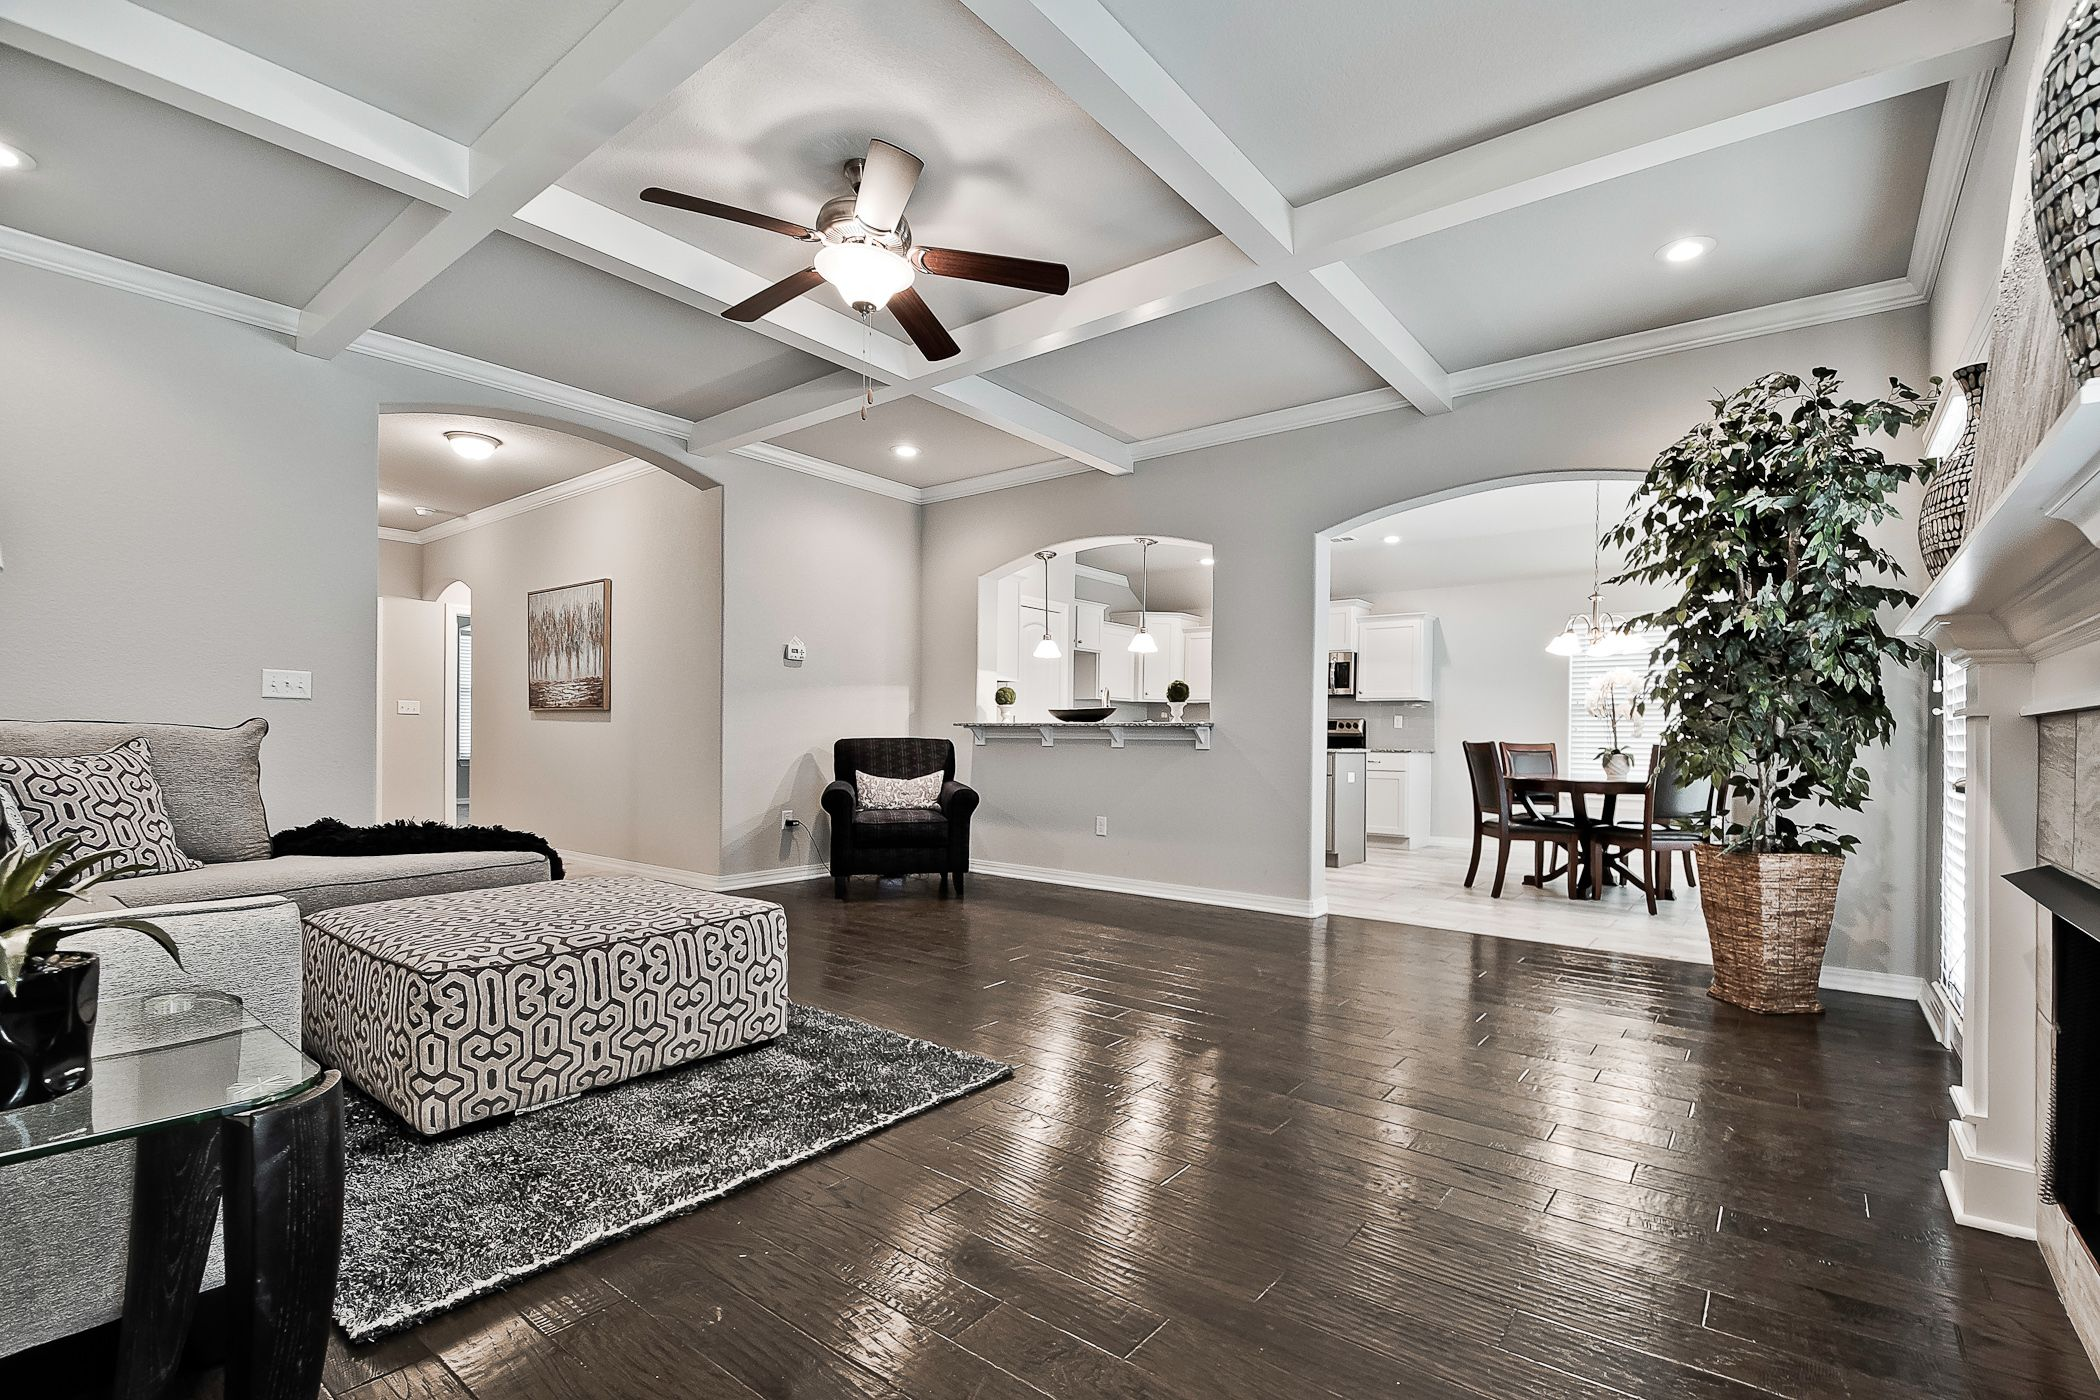 Bedroom featured in the 1659 By Riverwood Homes - Arkansas in Fayetteville, AR